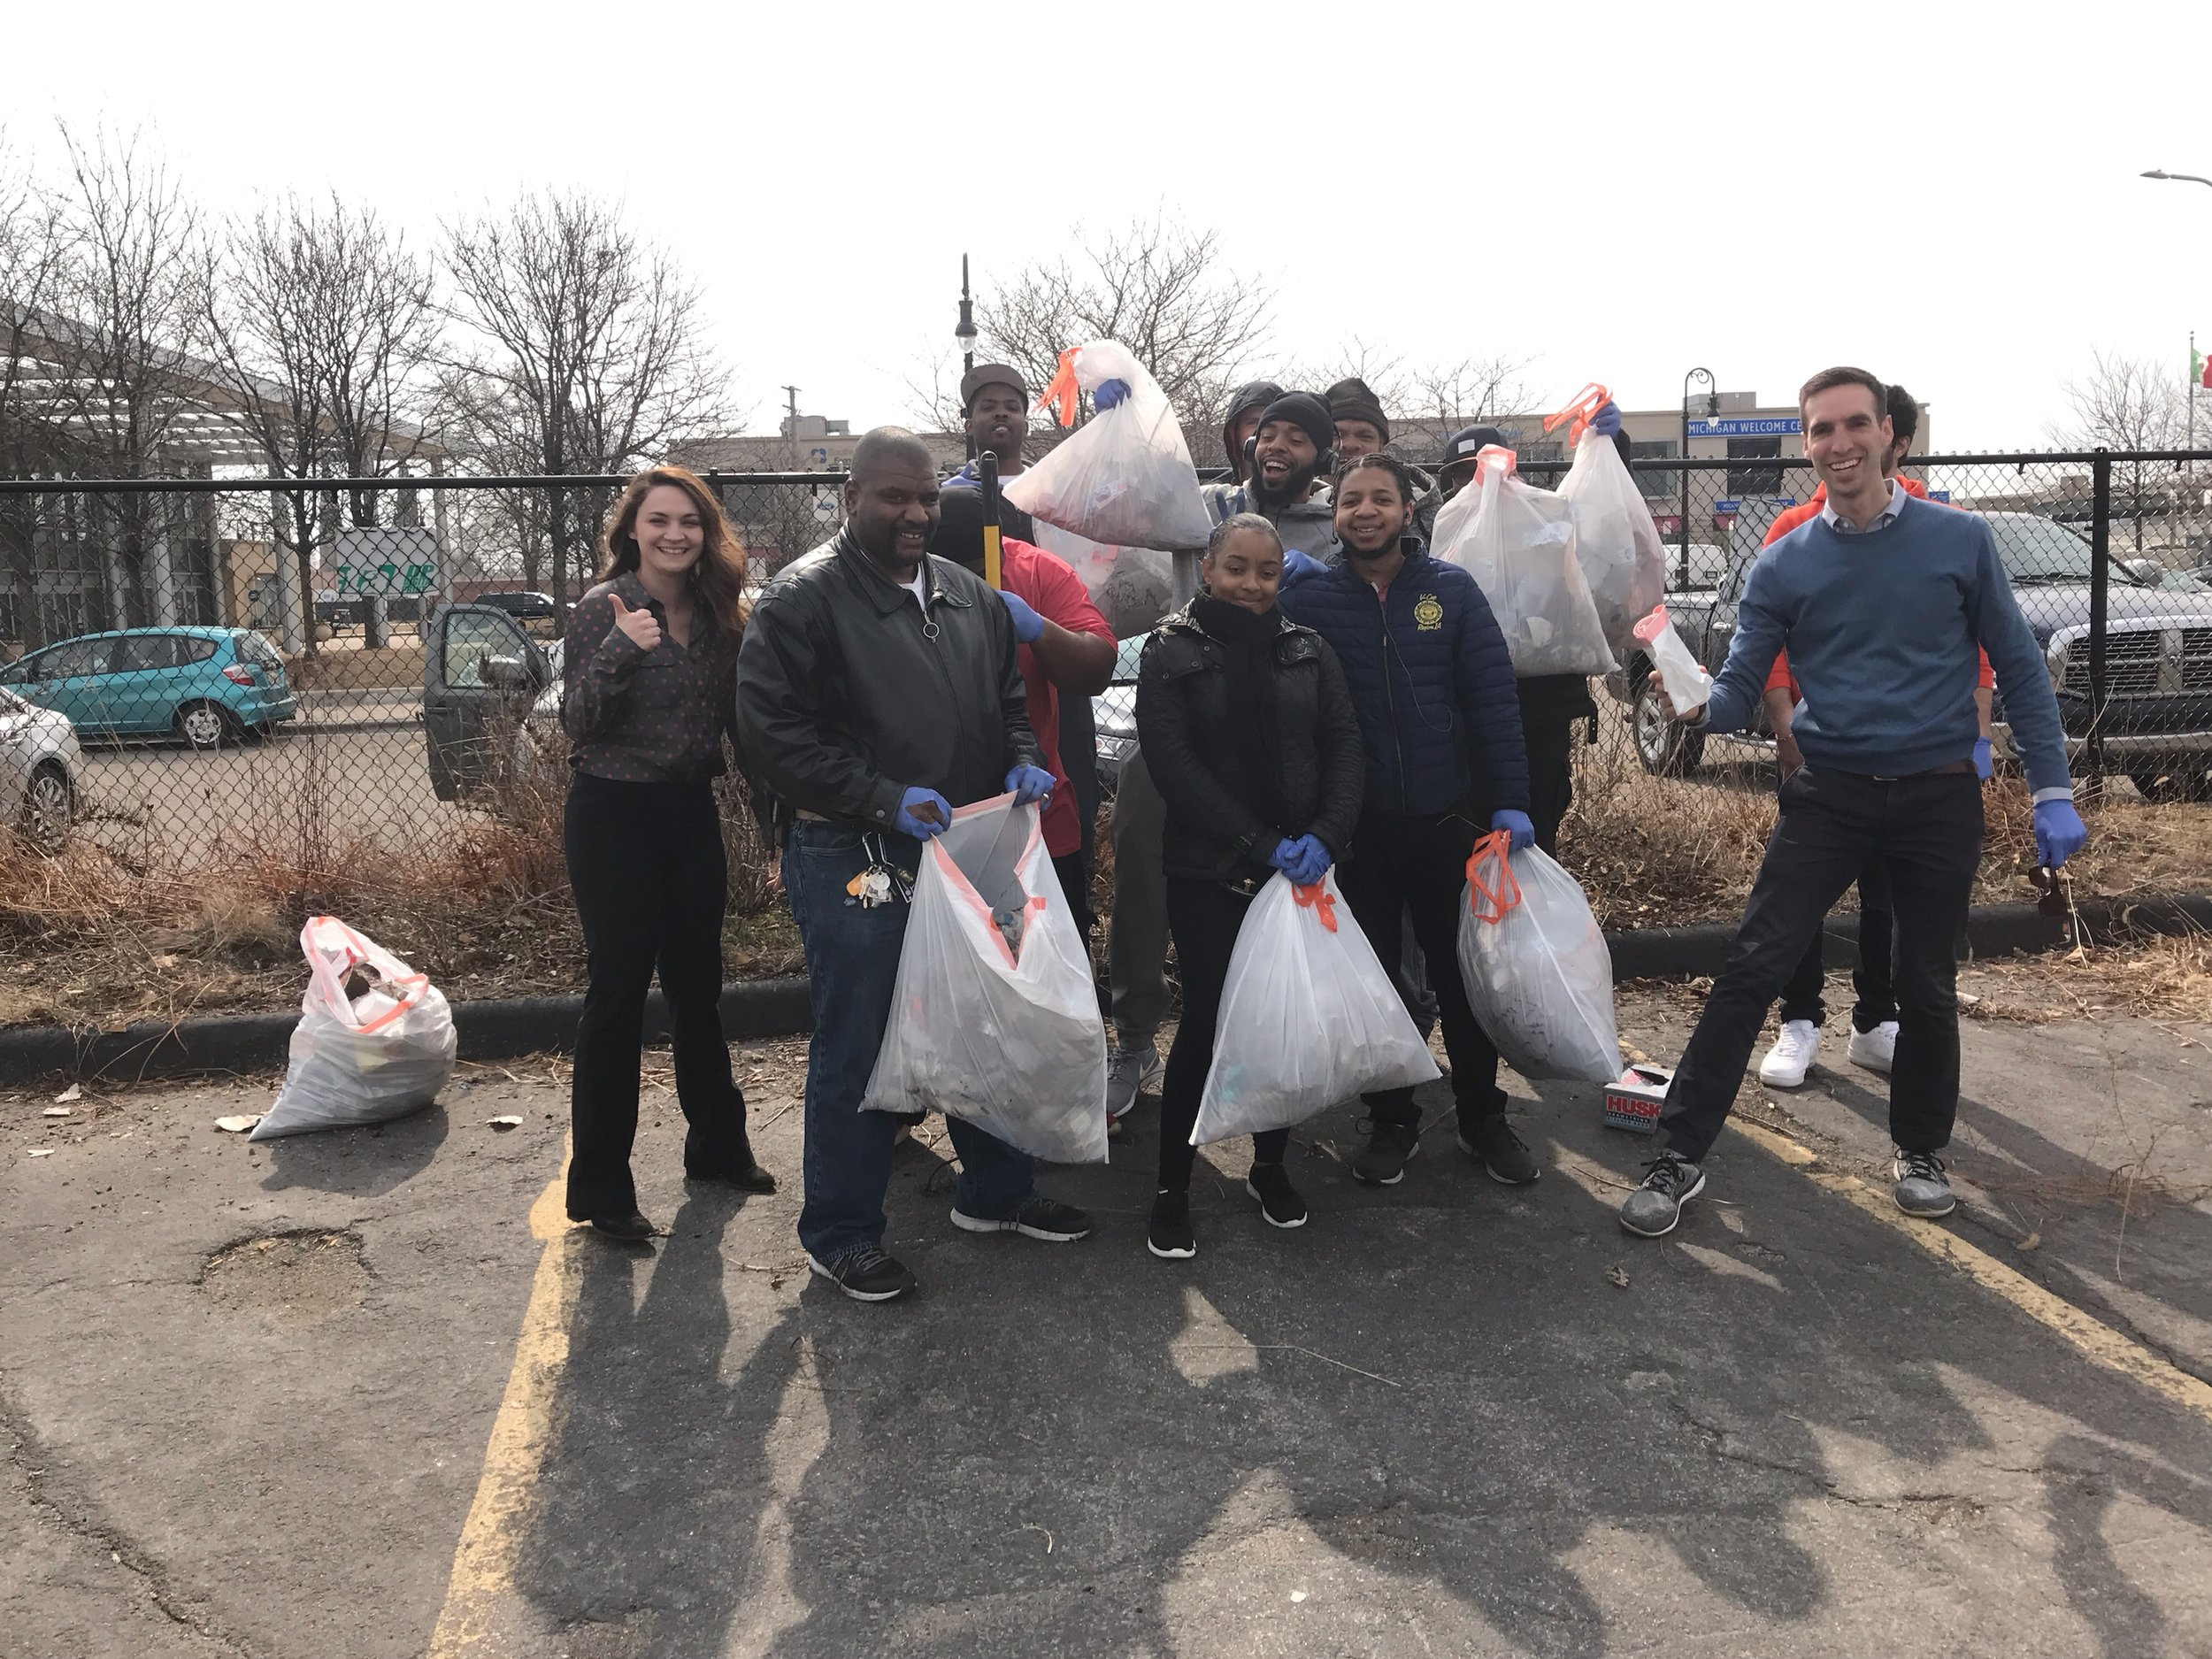 There was a bunch of trash beforehand, but we got it done - many hands make light work! This is the Plum Health DPC and DSDT crew cleaning up our shared parking lot and completing the Trashtag Challenge.